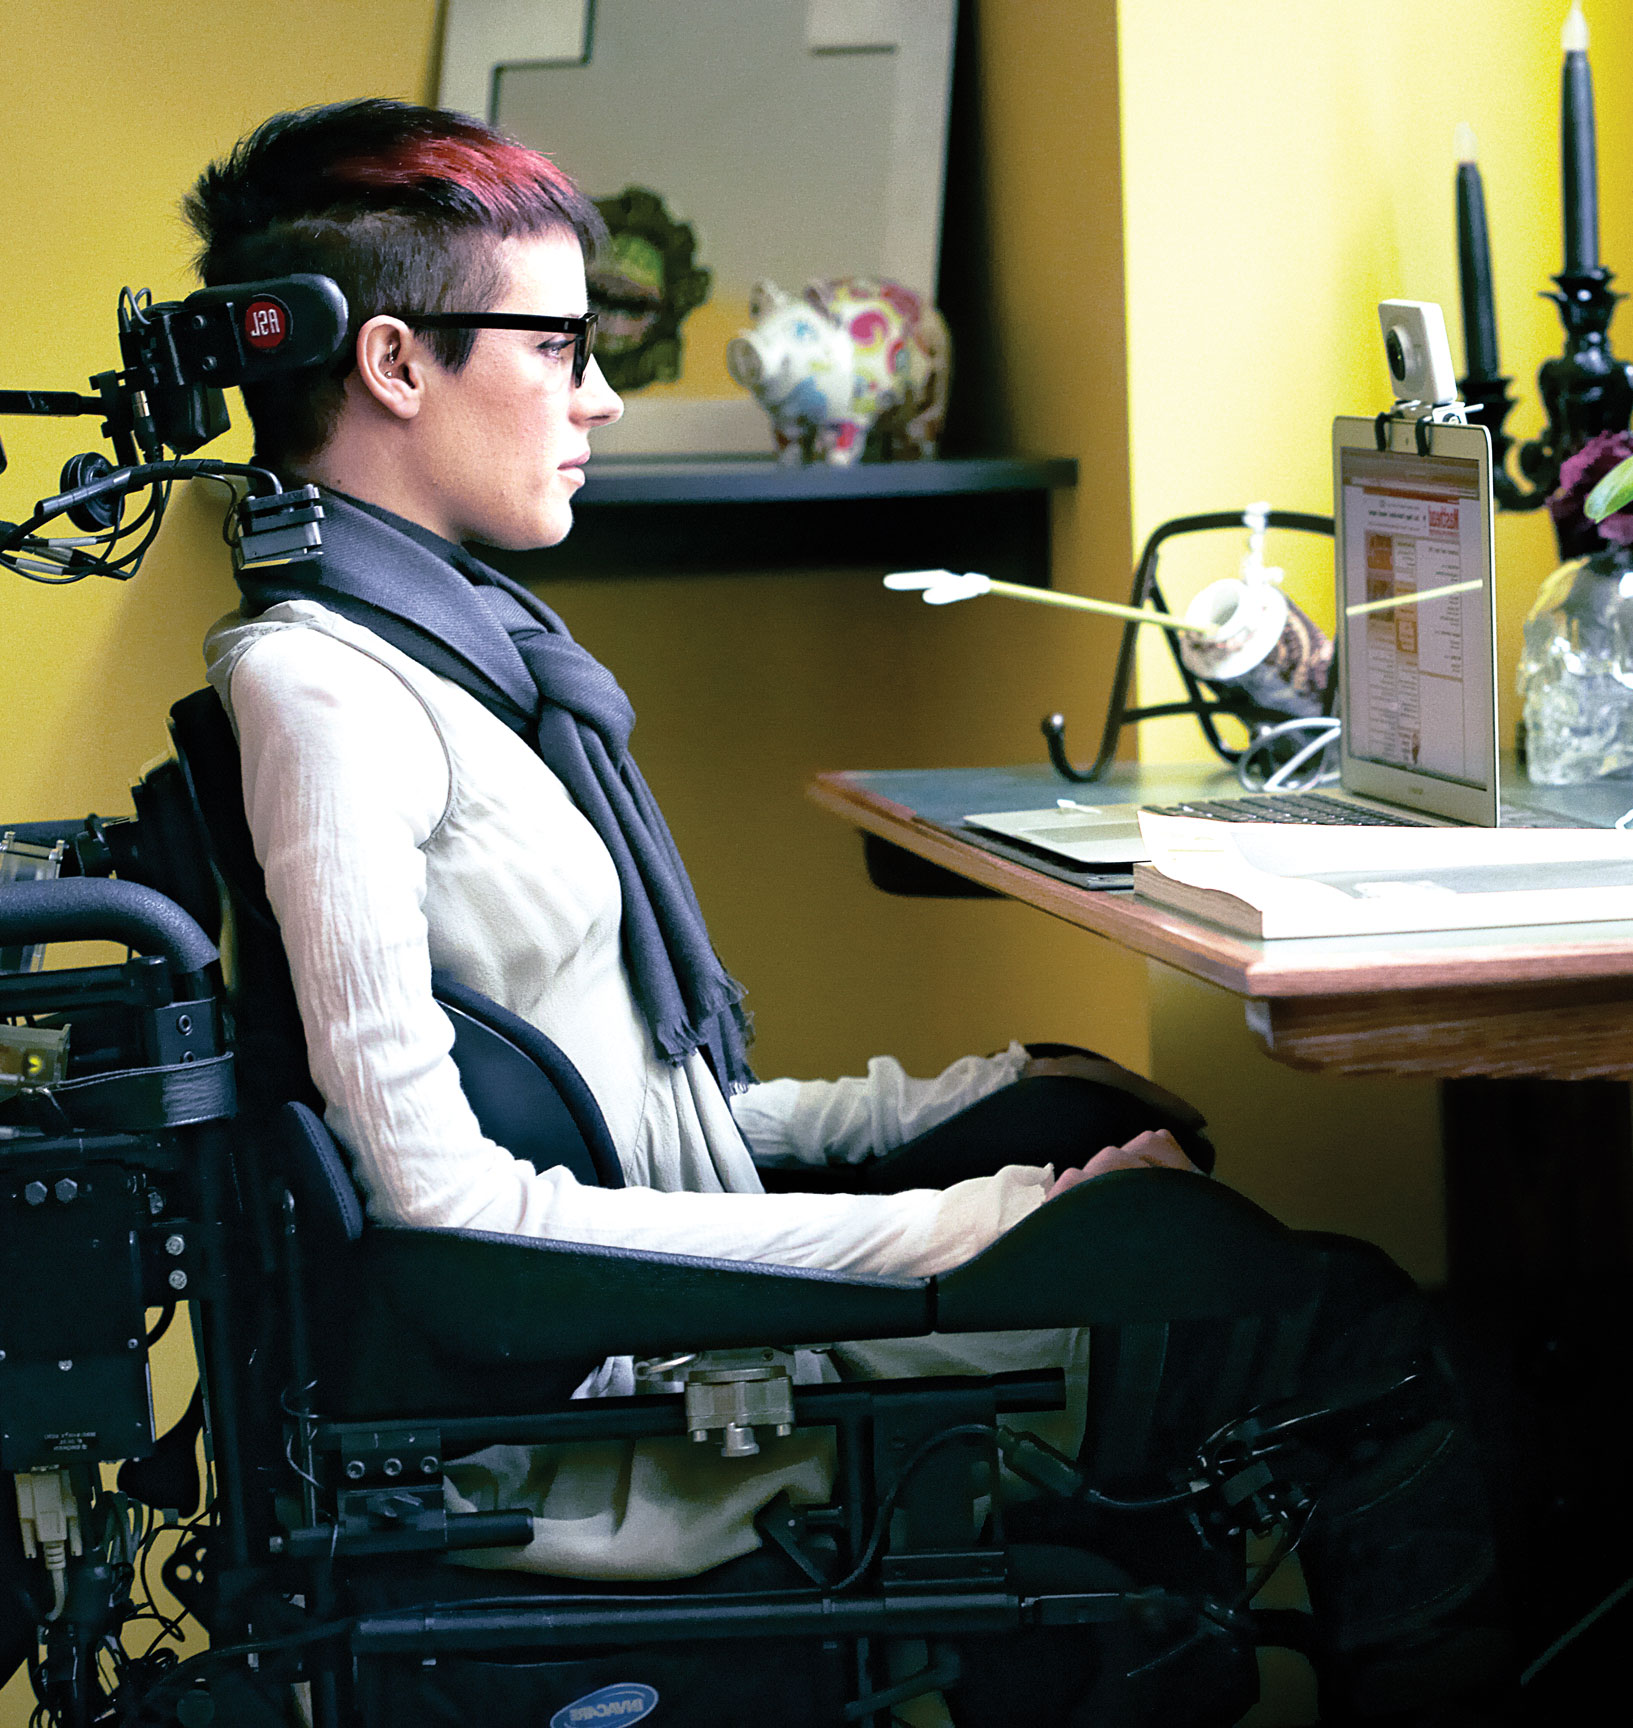 former circus performer carolyn pioro on her spinal cord injury carolyn s office set up which allows her to work independently